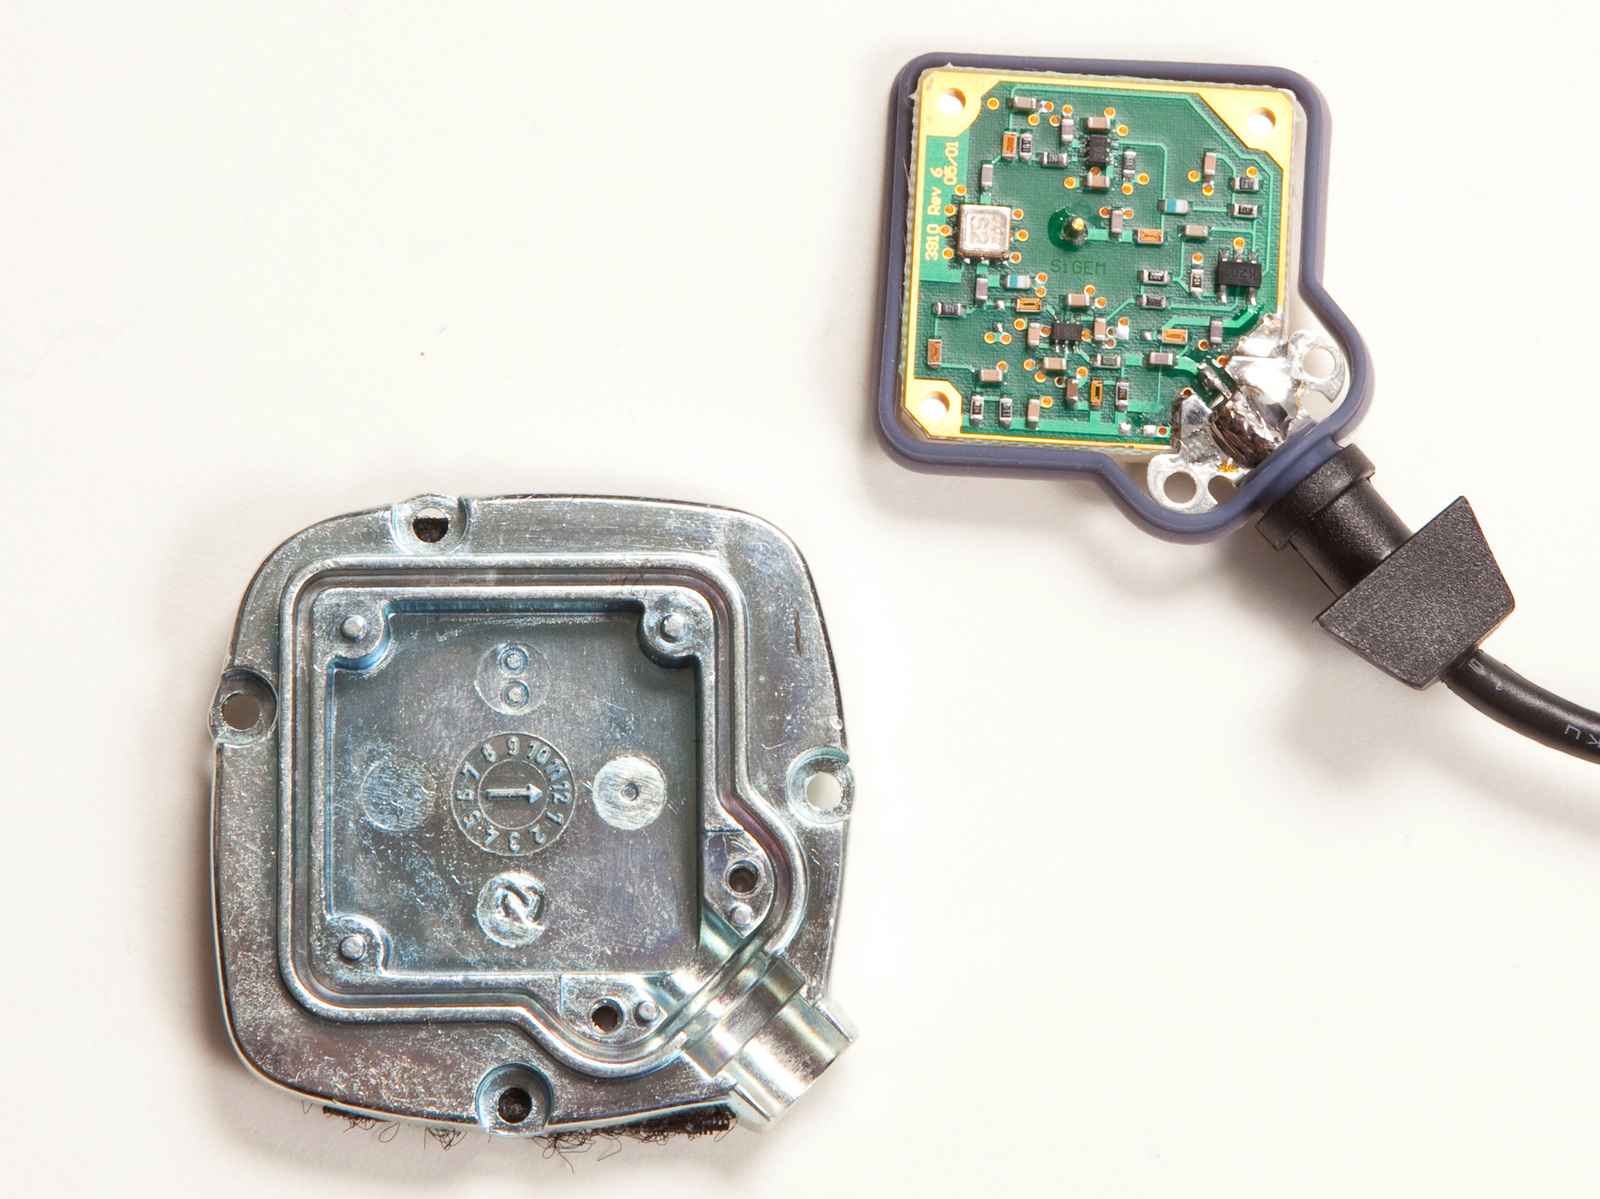 Step 4— Tracking Device Teardown